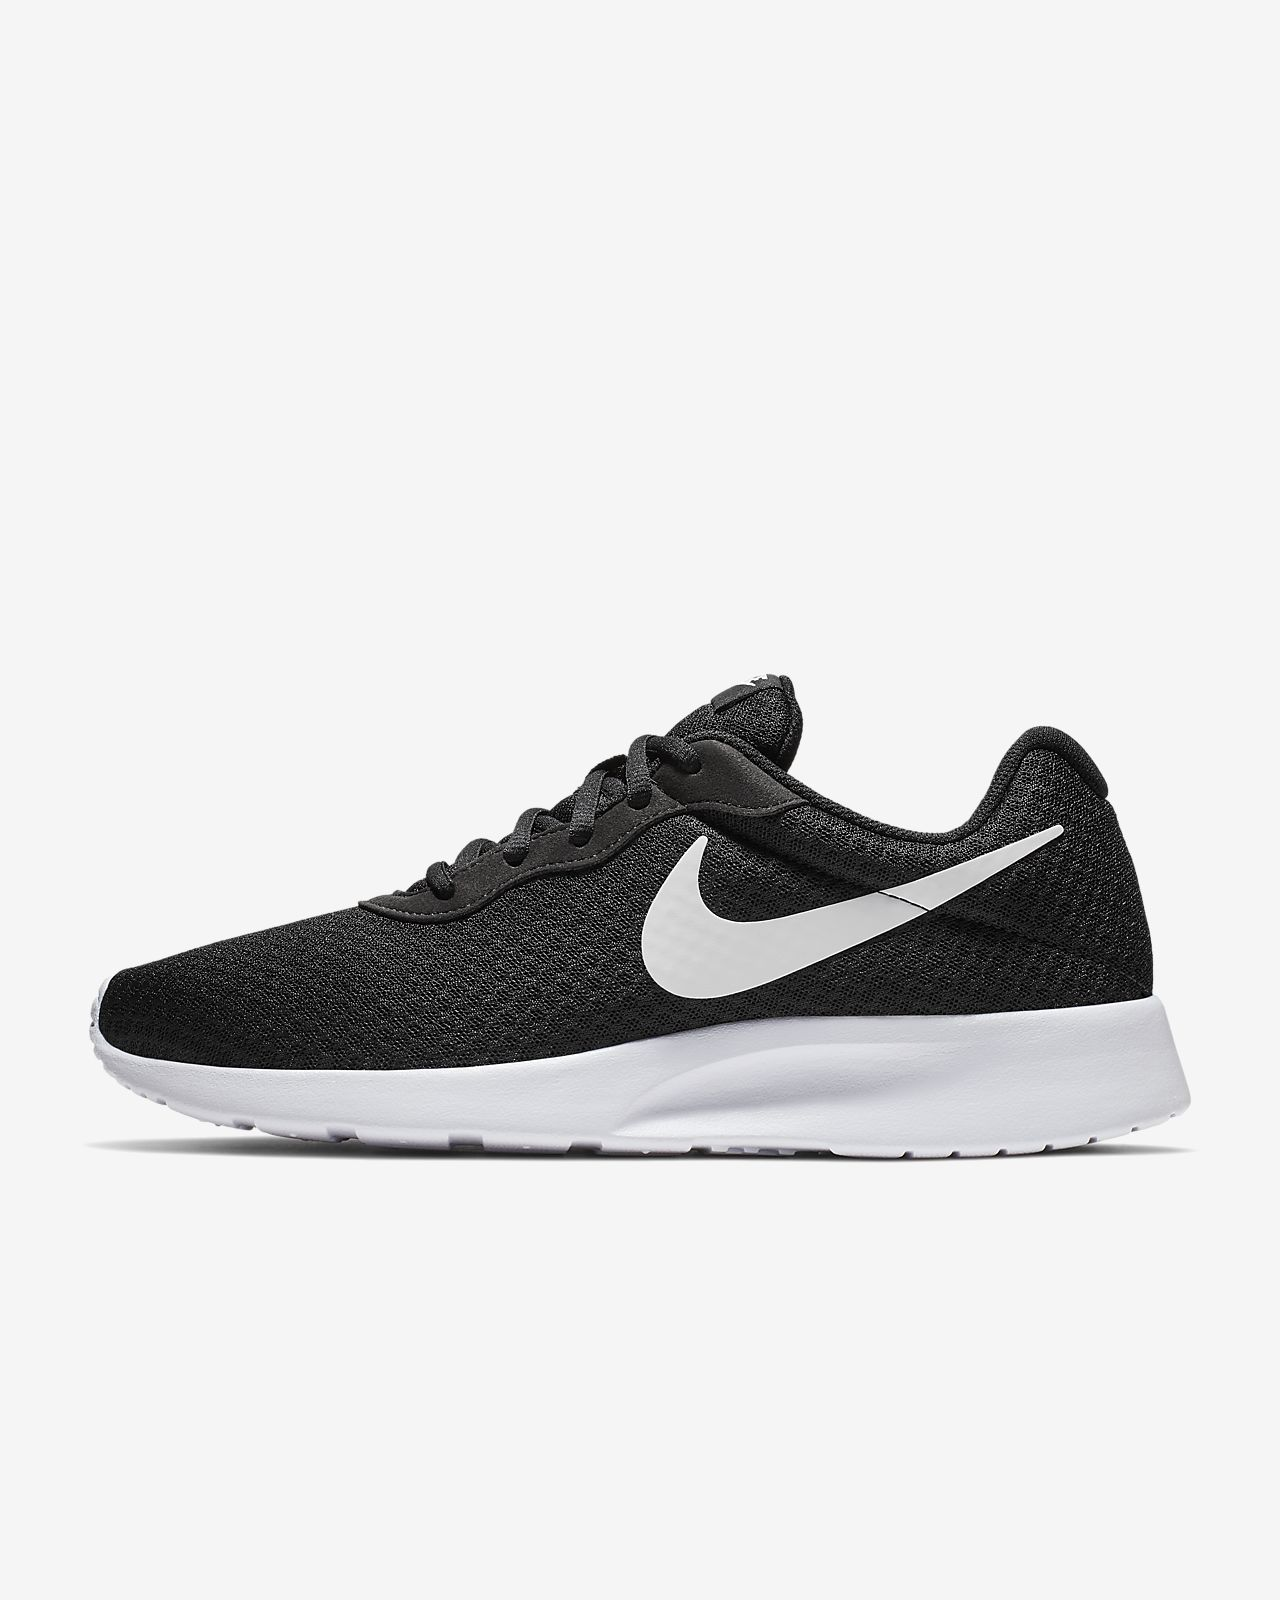 promo code 2e963 d0ecc Low Resolution Nike Tanjun Mens Shoe Nike Tanjun Mens Shoe